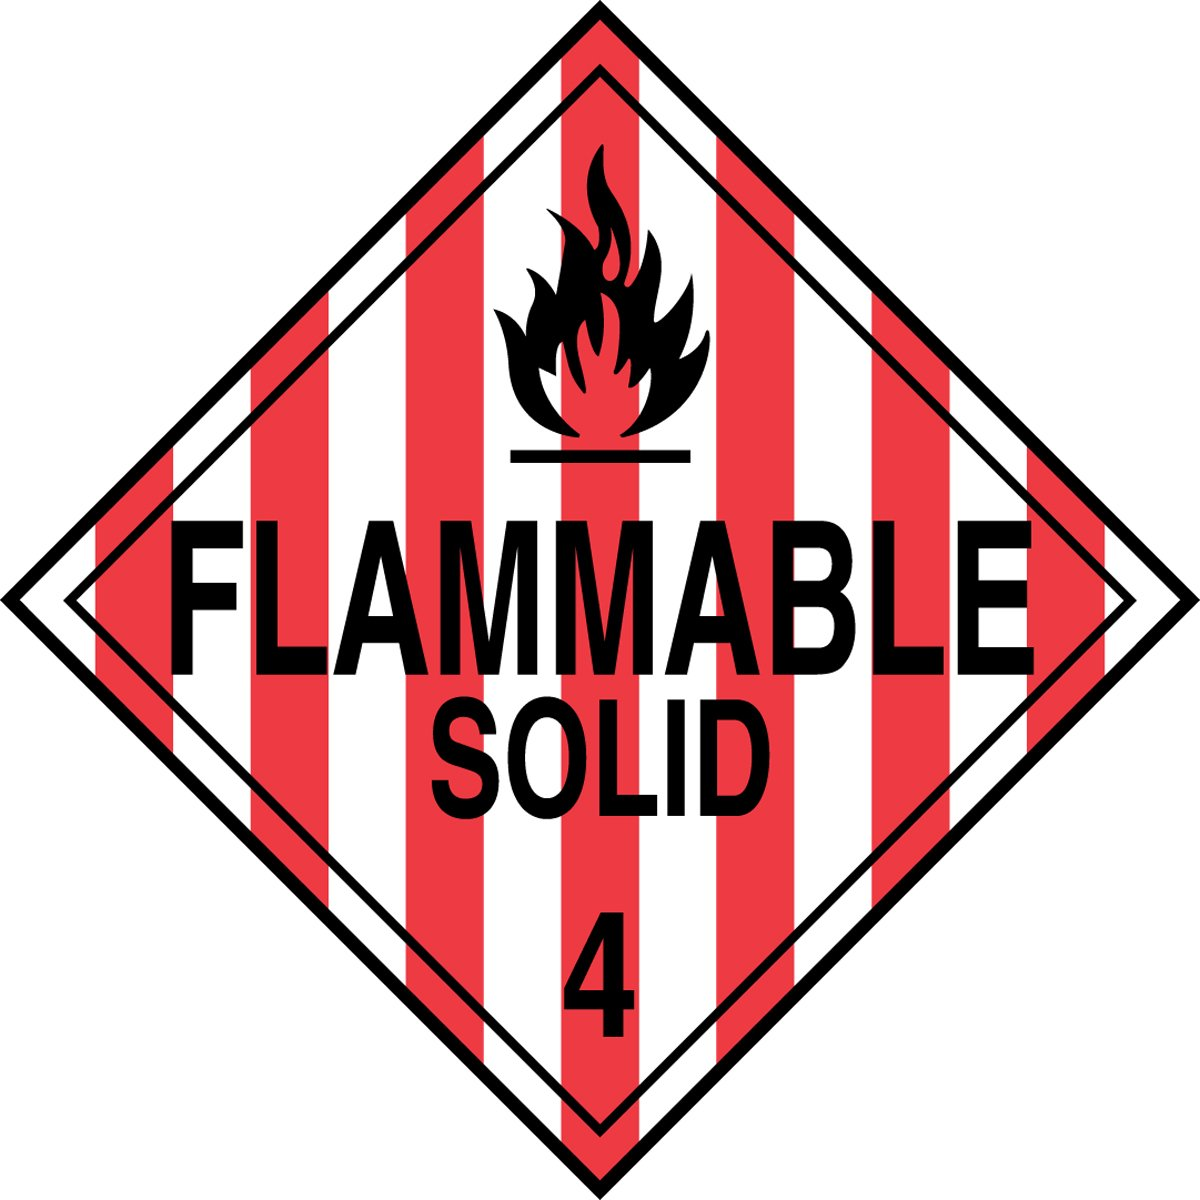 Accuform MPL401CT50 PF-Cardstock Hazard Class 4 DOT Placard, Legend''FLAMMABLE SOLID 4'' with Graphic, 10-3/4'' Width x 10-3/4'' Length, Black on Red/White Stripe (Pack of 50)